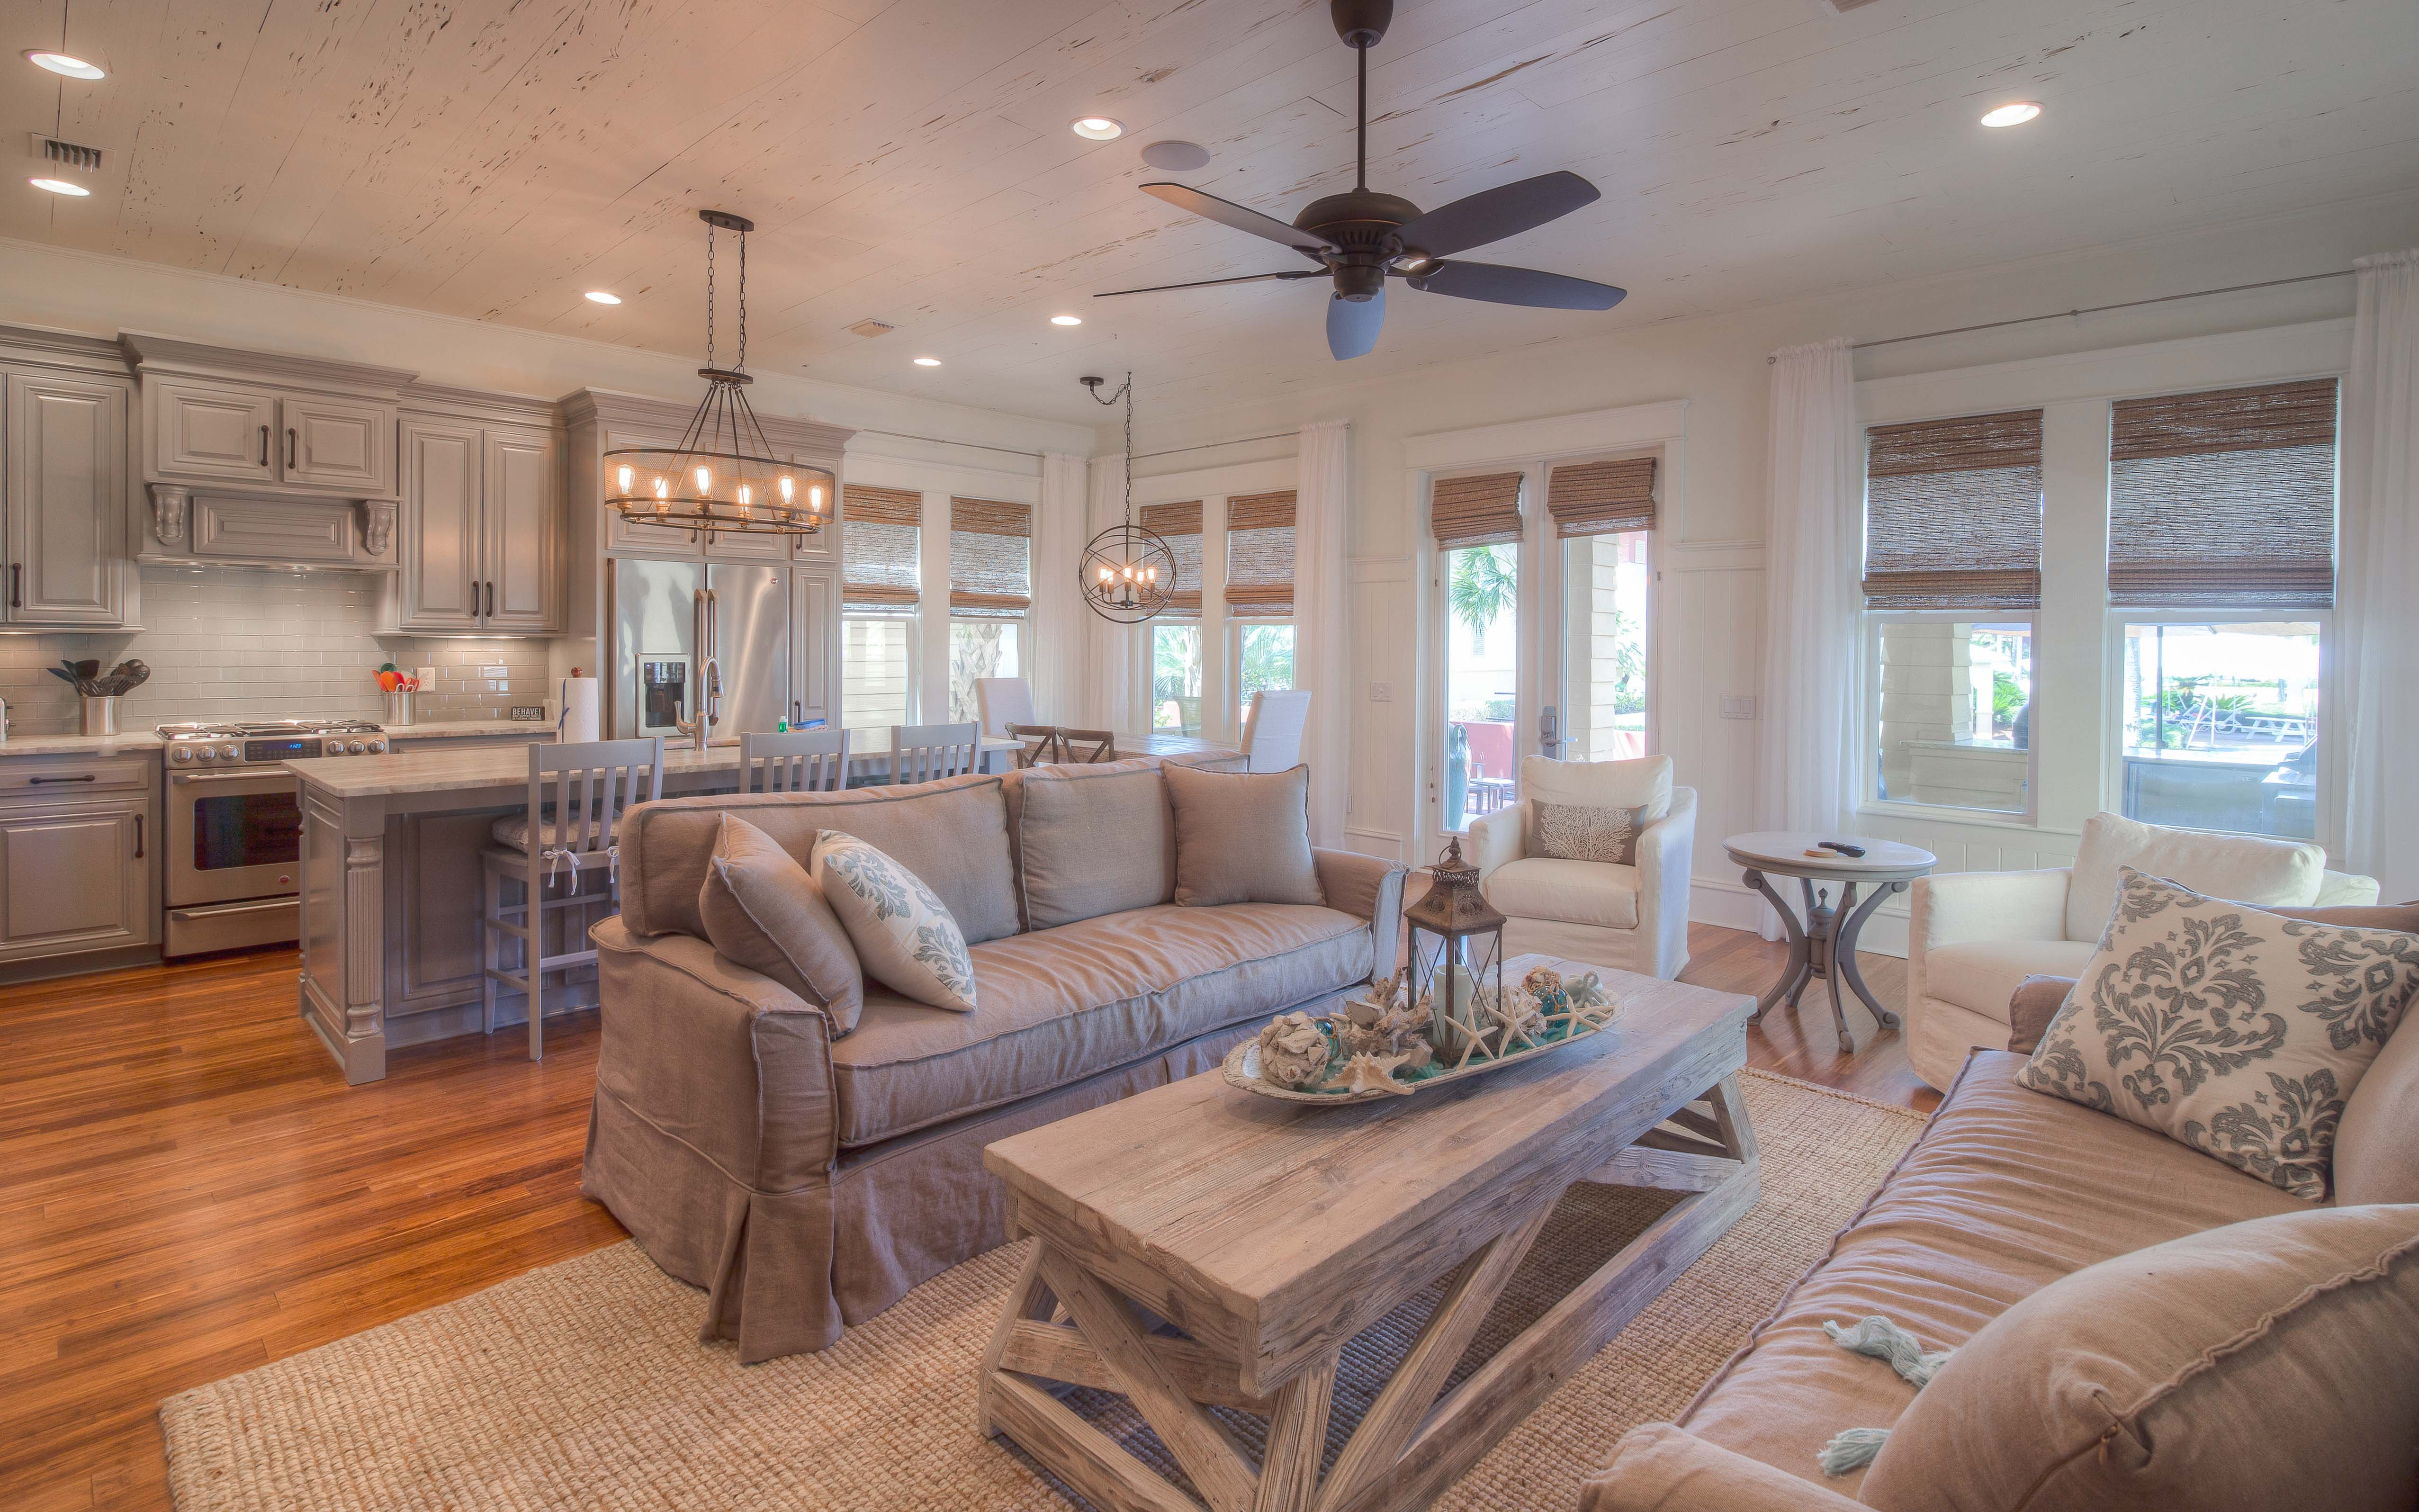 Newly Remodeled Seacrest Resort Home, Backs Up To